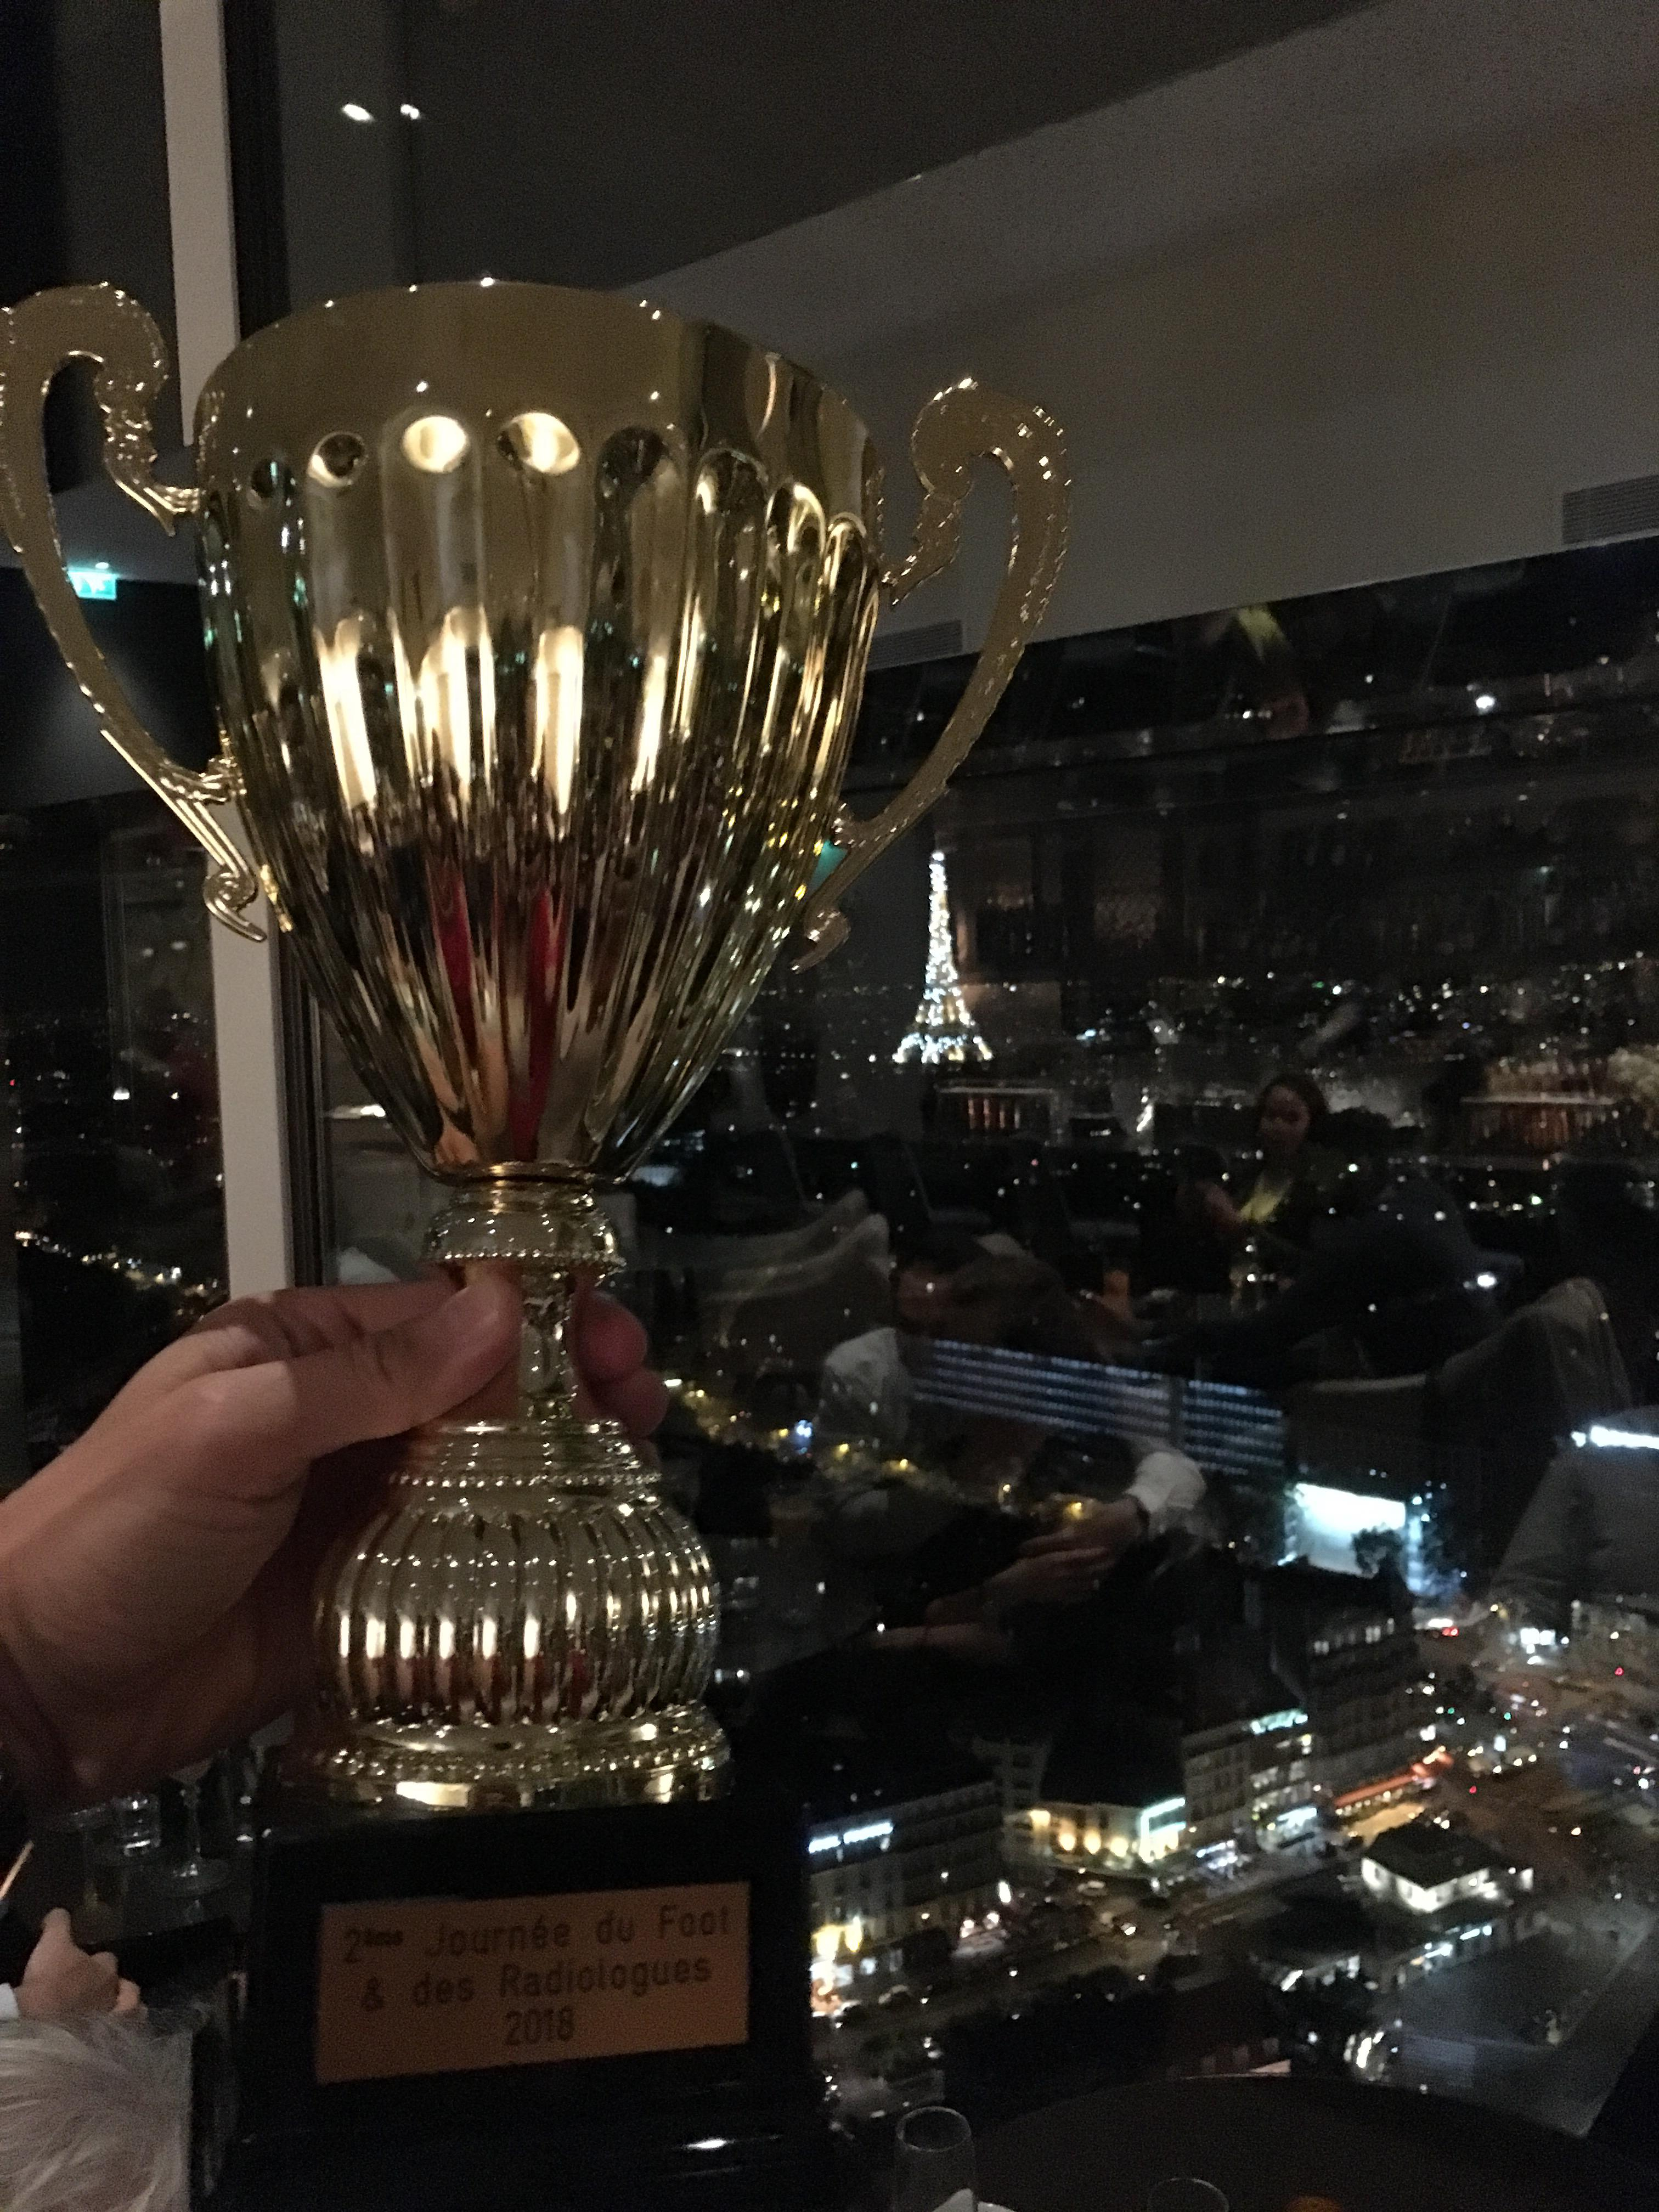 Trophée ITL lizemed salon JFR - 2018